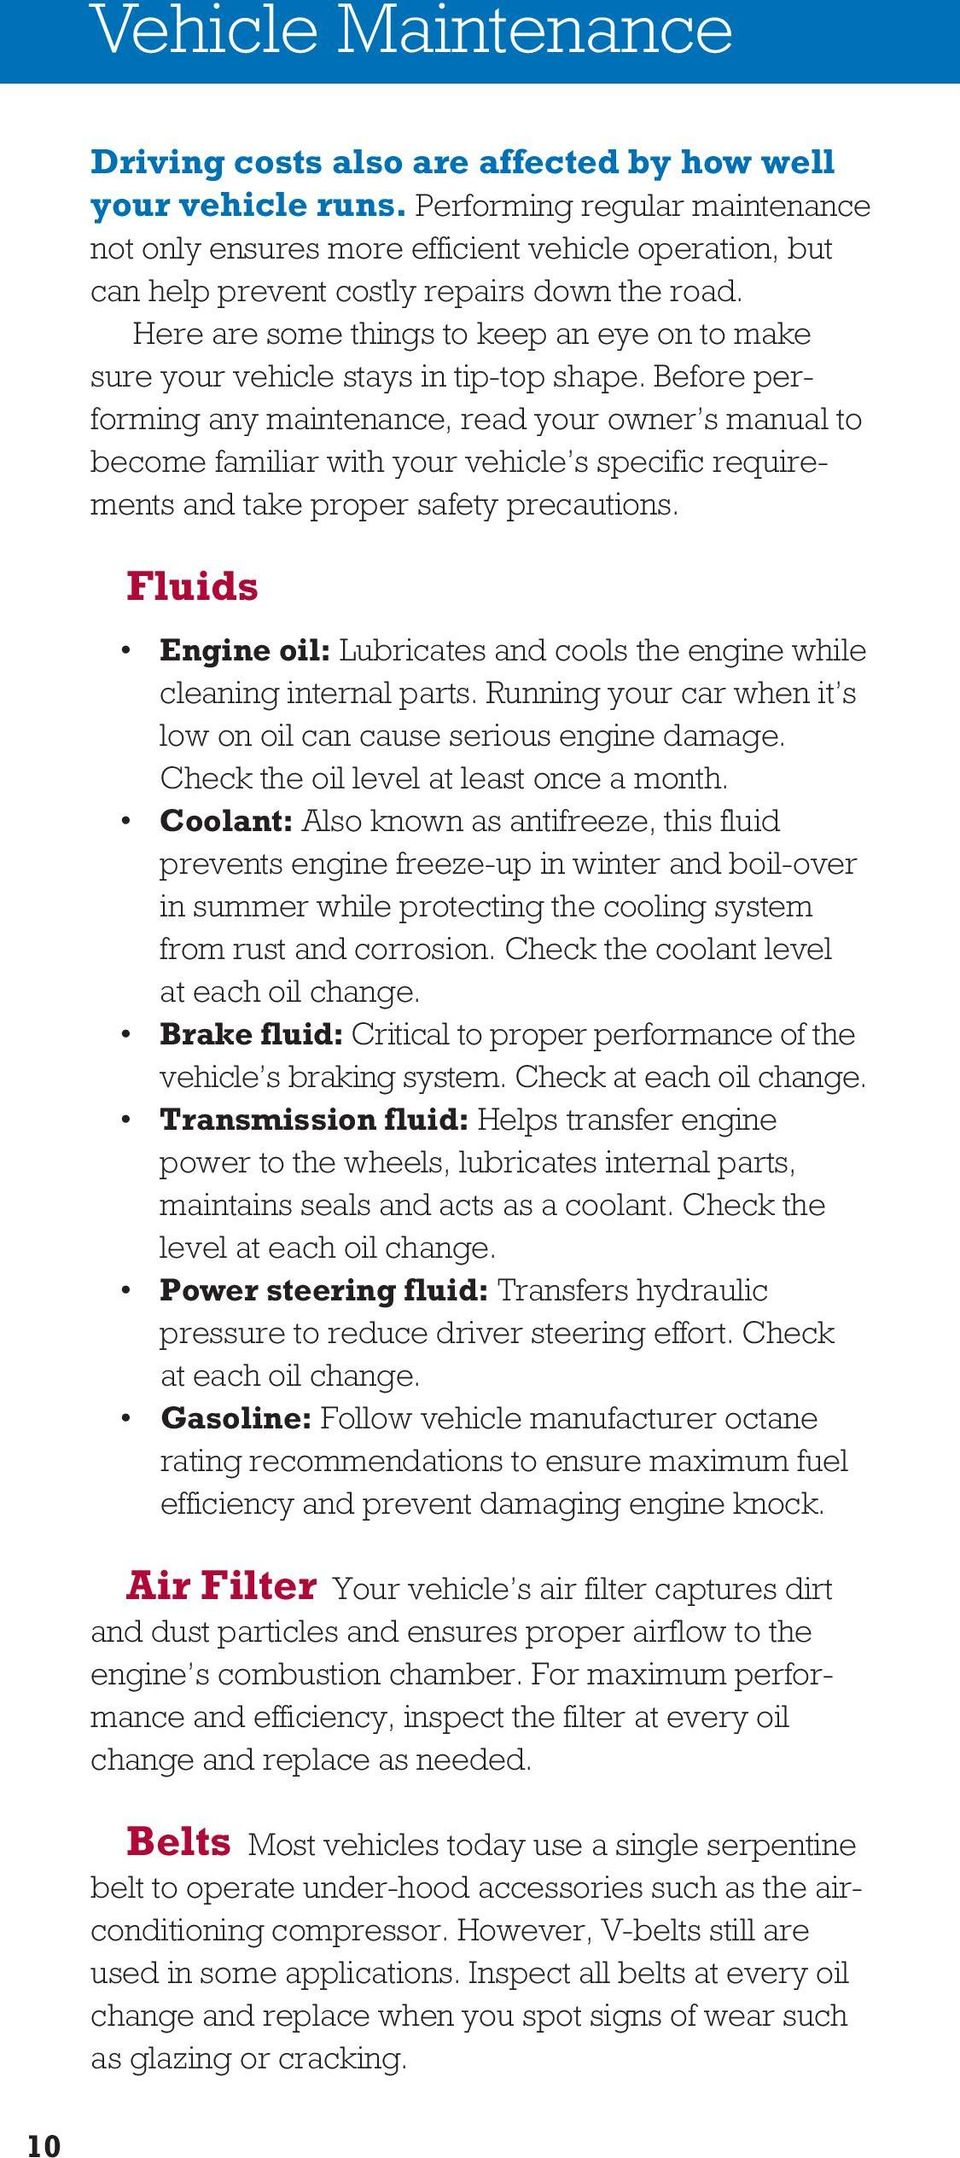 Here are some things to keep an eye on to make sure your vehicle stays in tip-top shape.